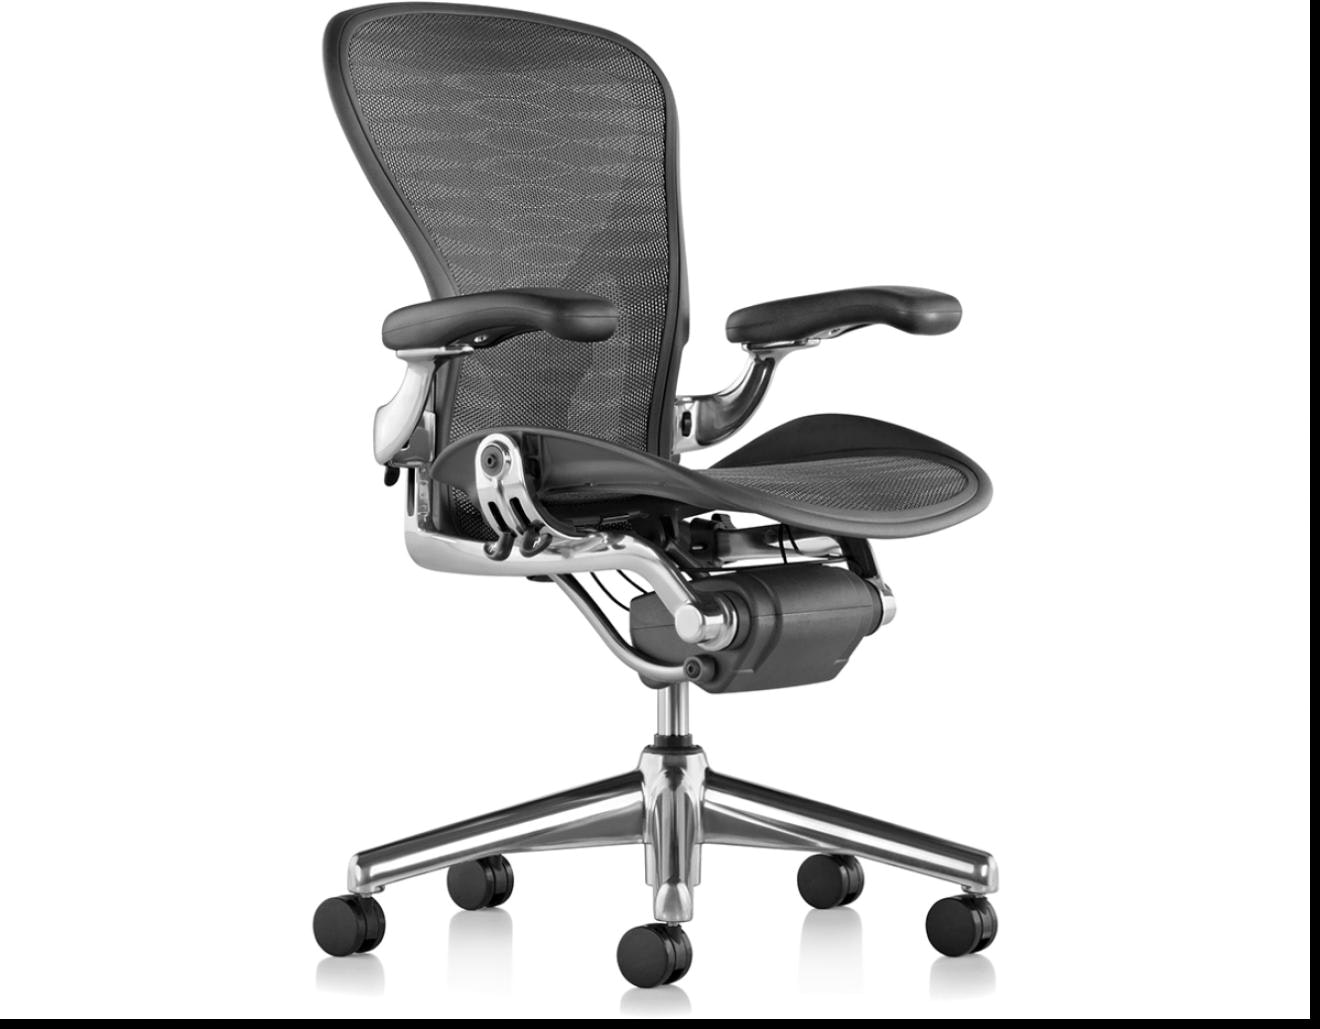 aeron chair parts aeron chair parts ergonomic review haworth improv herman aeron chair l fdbff